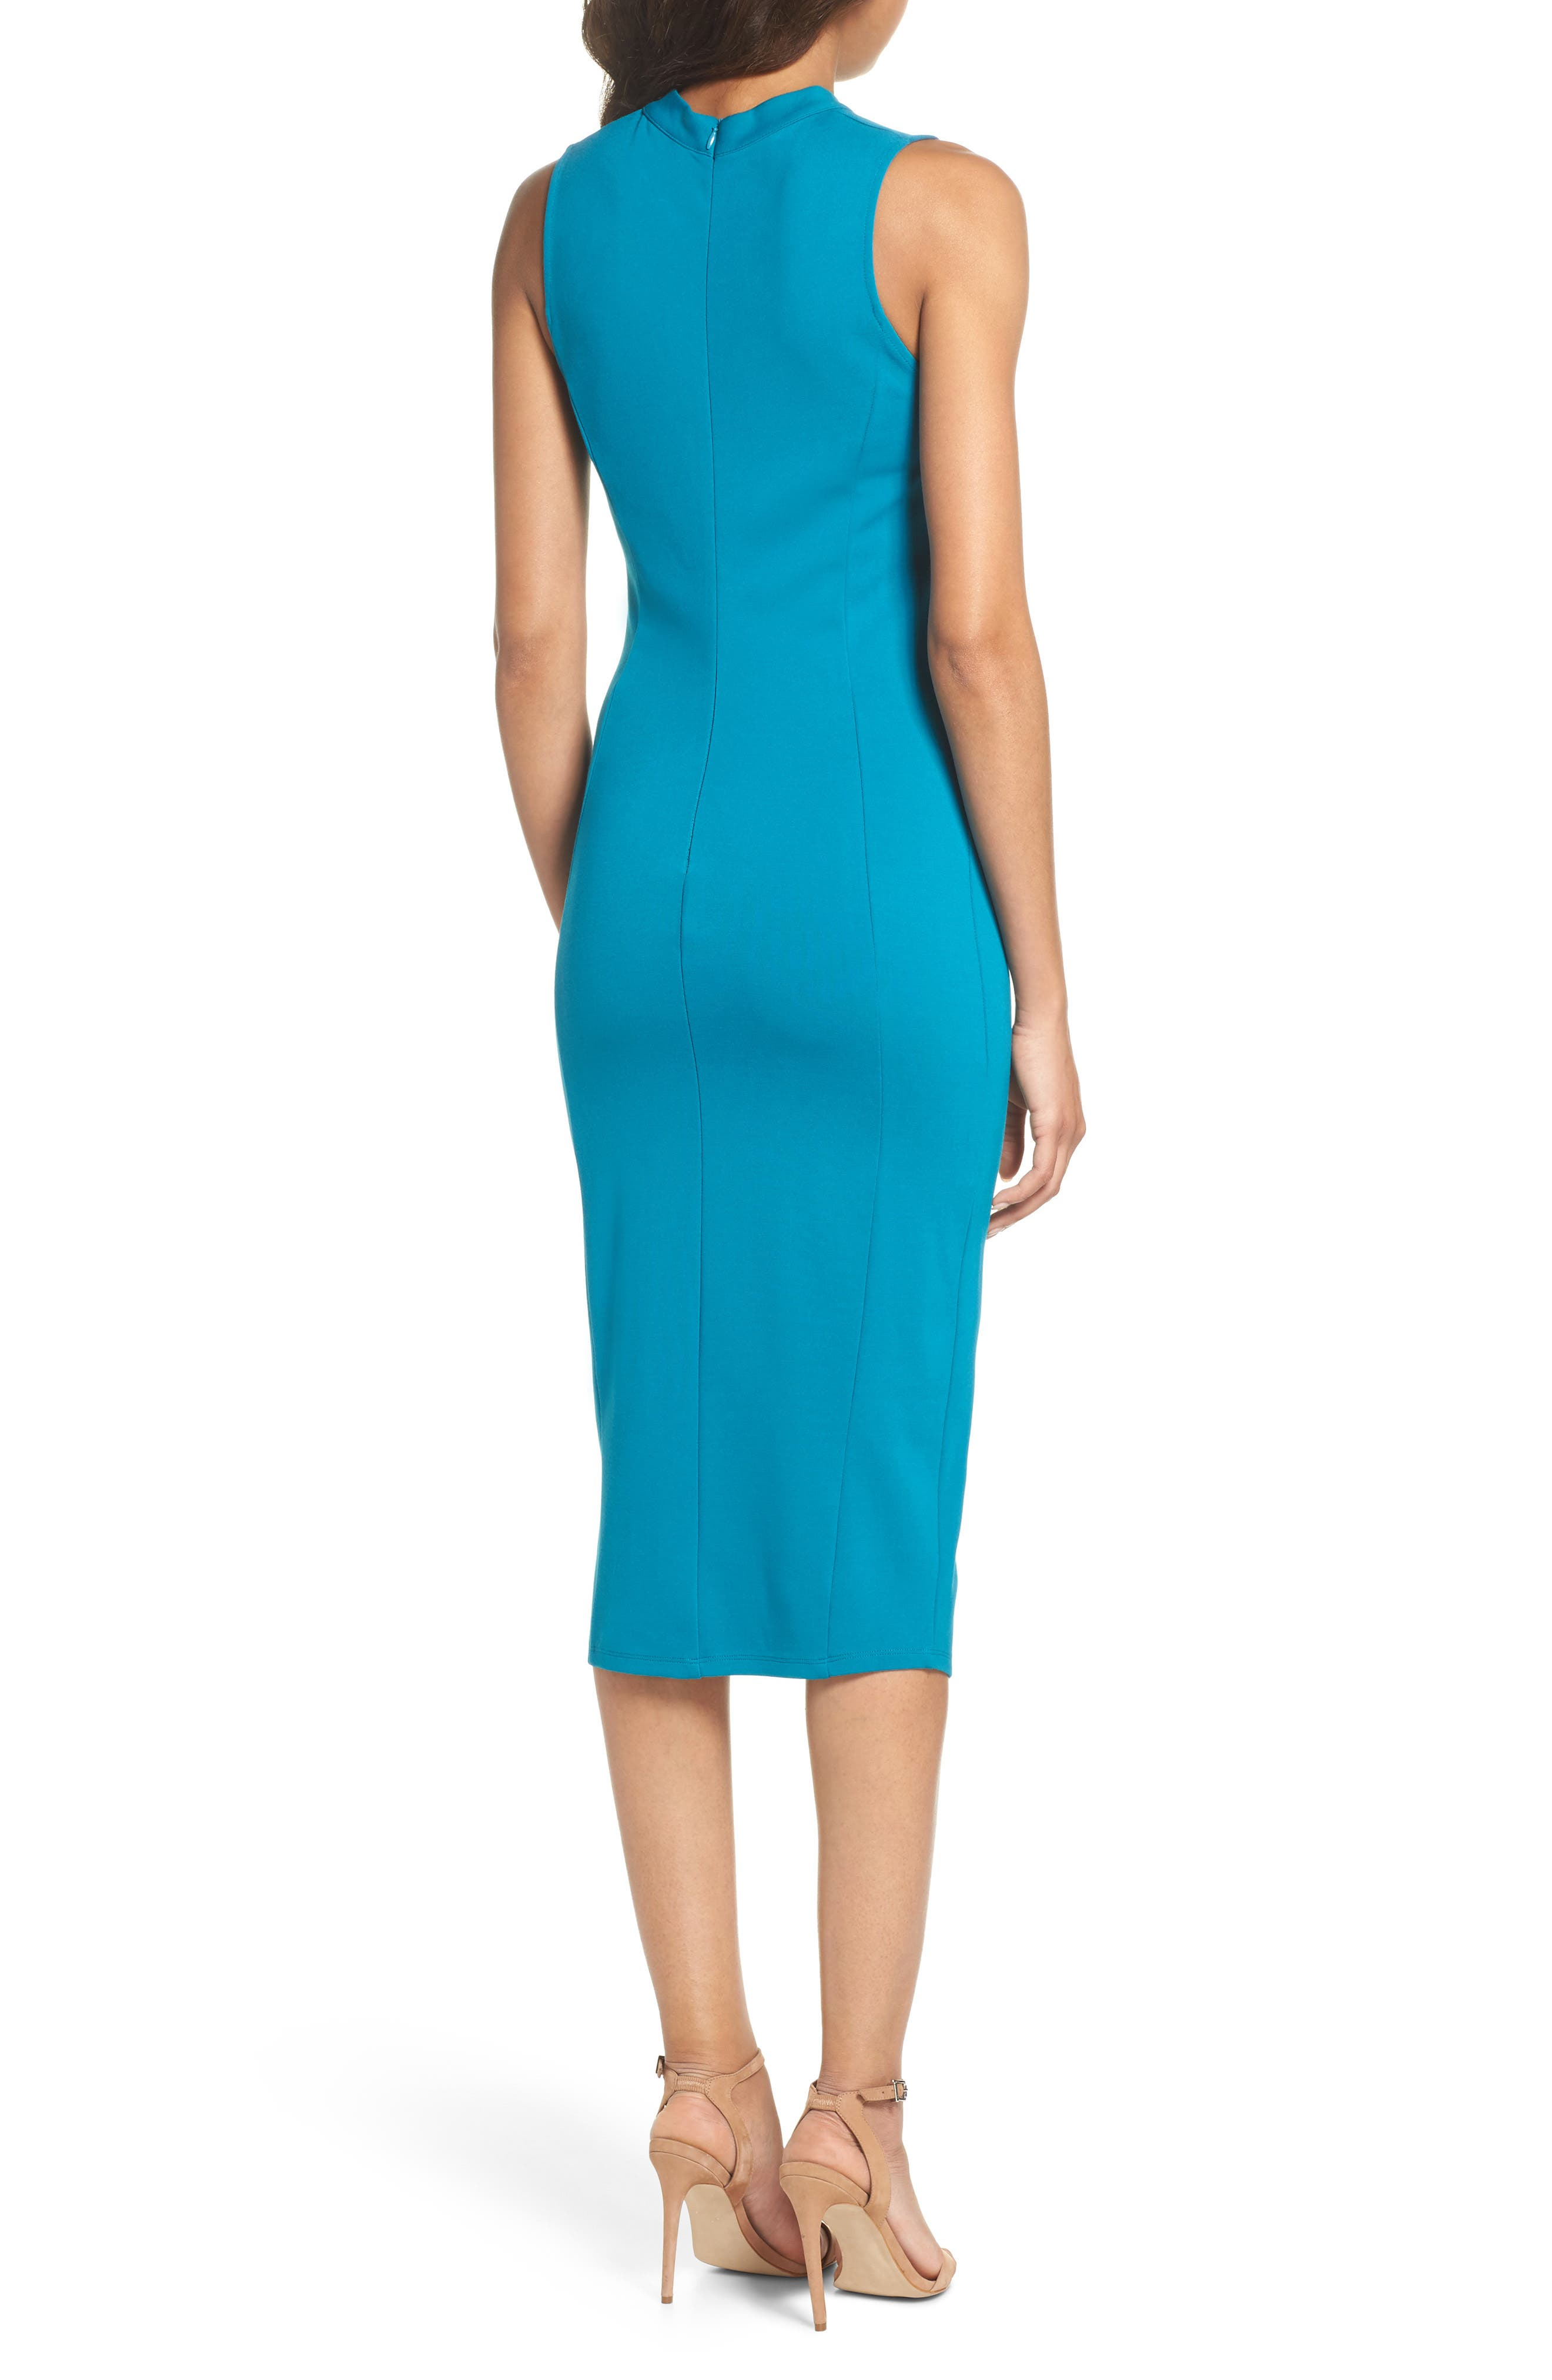 Alternate Image 2  - Felicity & Coco Pepa Mock Neck Sheath Dress (Nordstrom Exclusive)